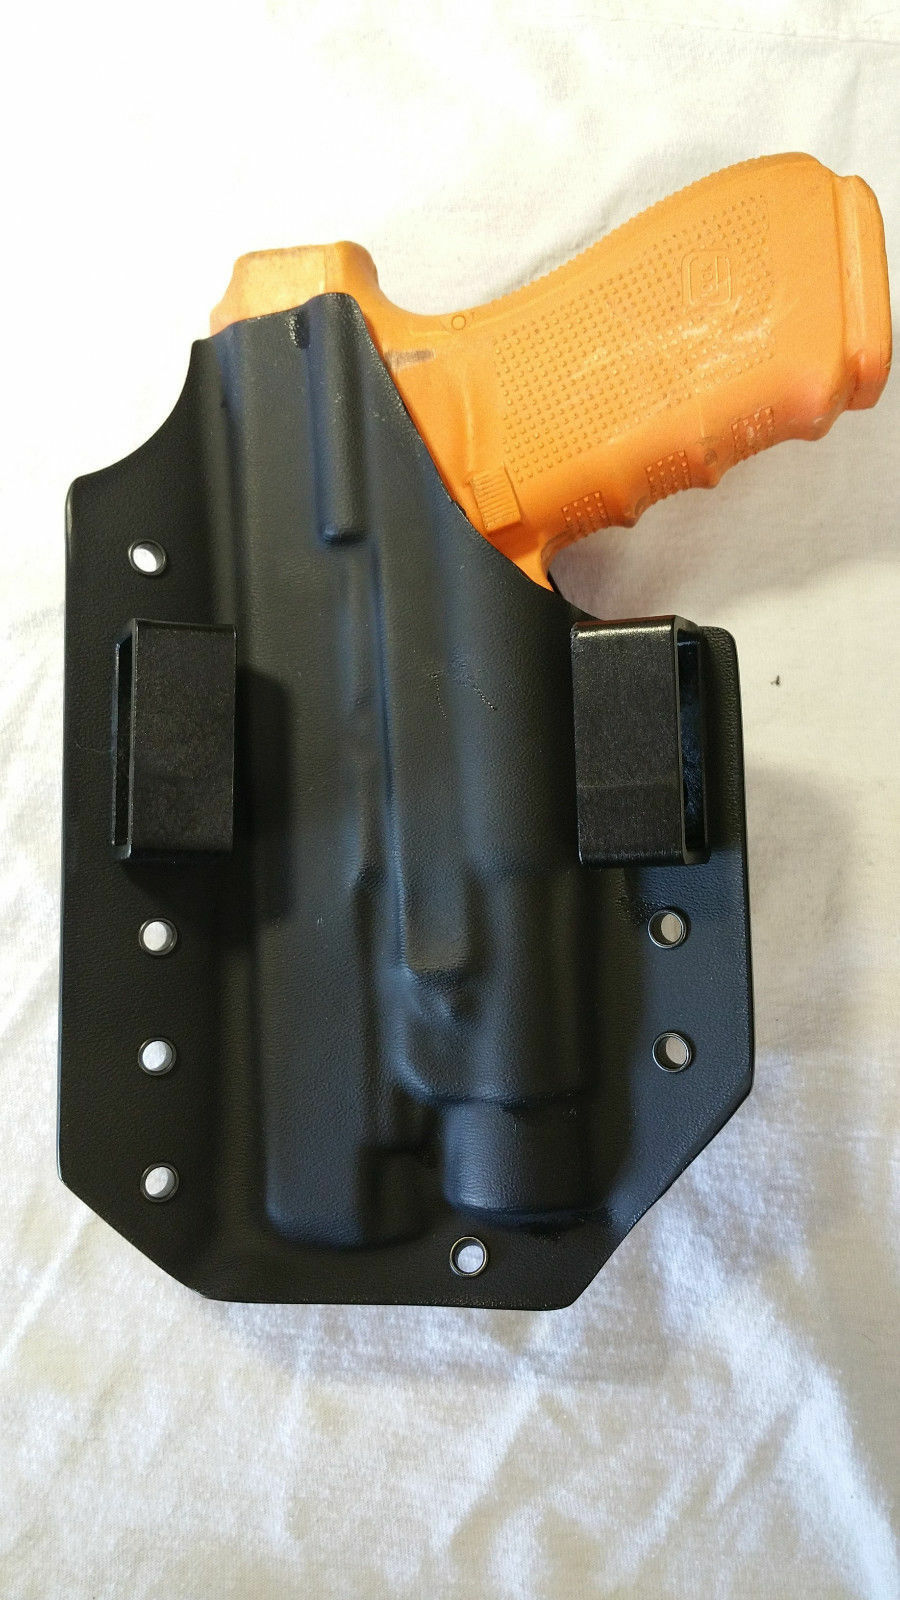 Fits a Springfield Pounch XDM 3.8 Holster/Magazine Pounch Springfield combo 39f832